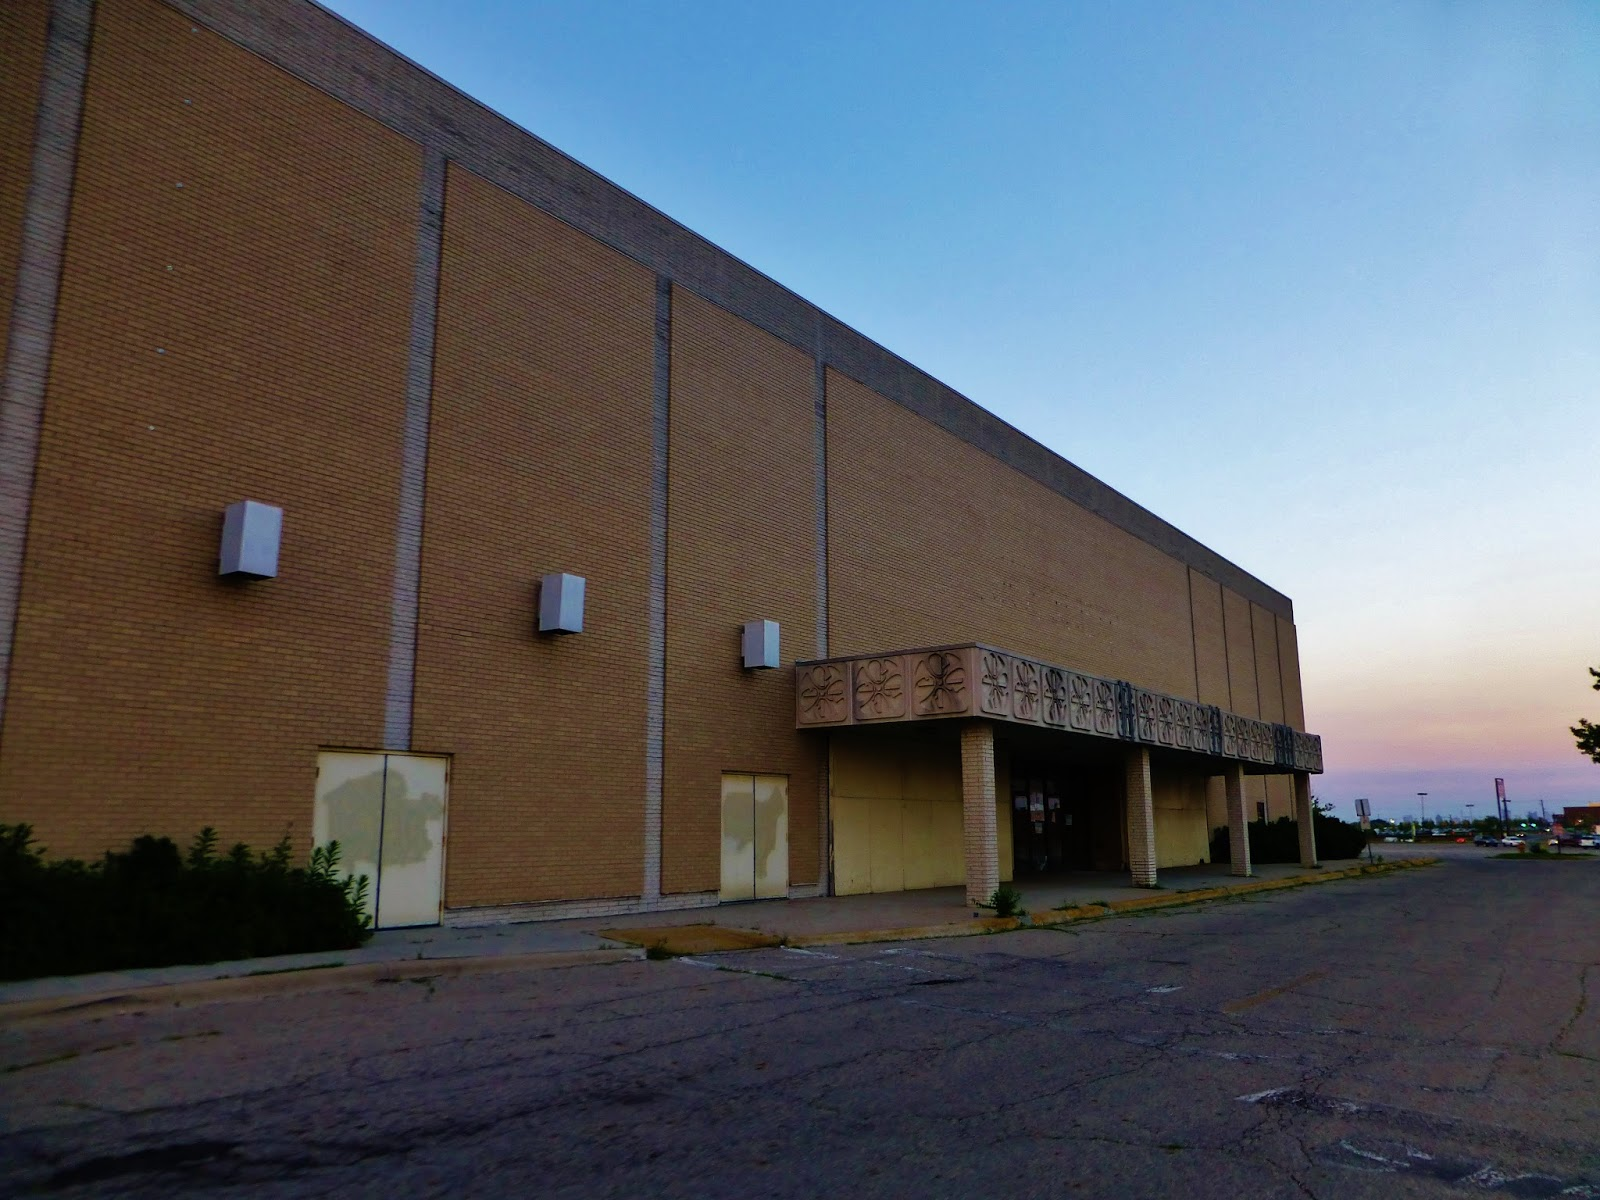 Sears Auto Center - Eastland Mall, Columbus, Ohio - Rated based on 6 Reviews